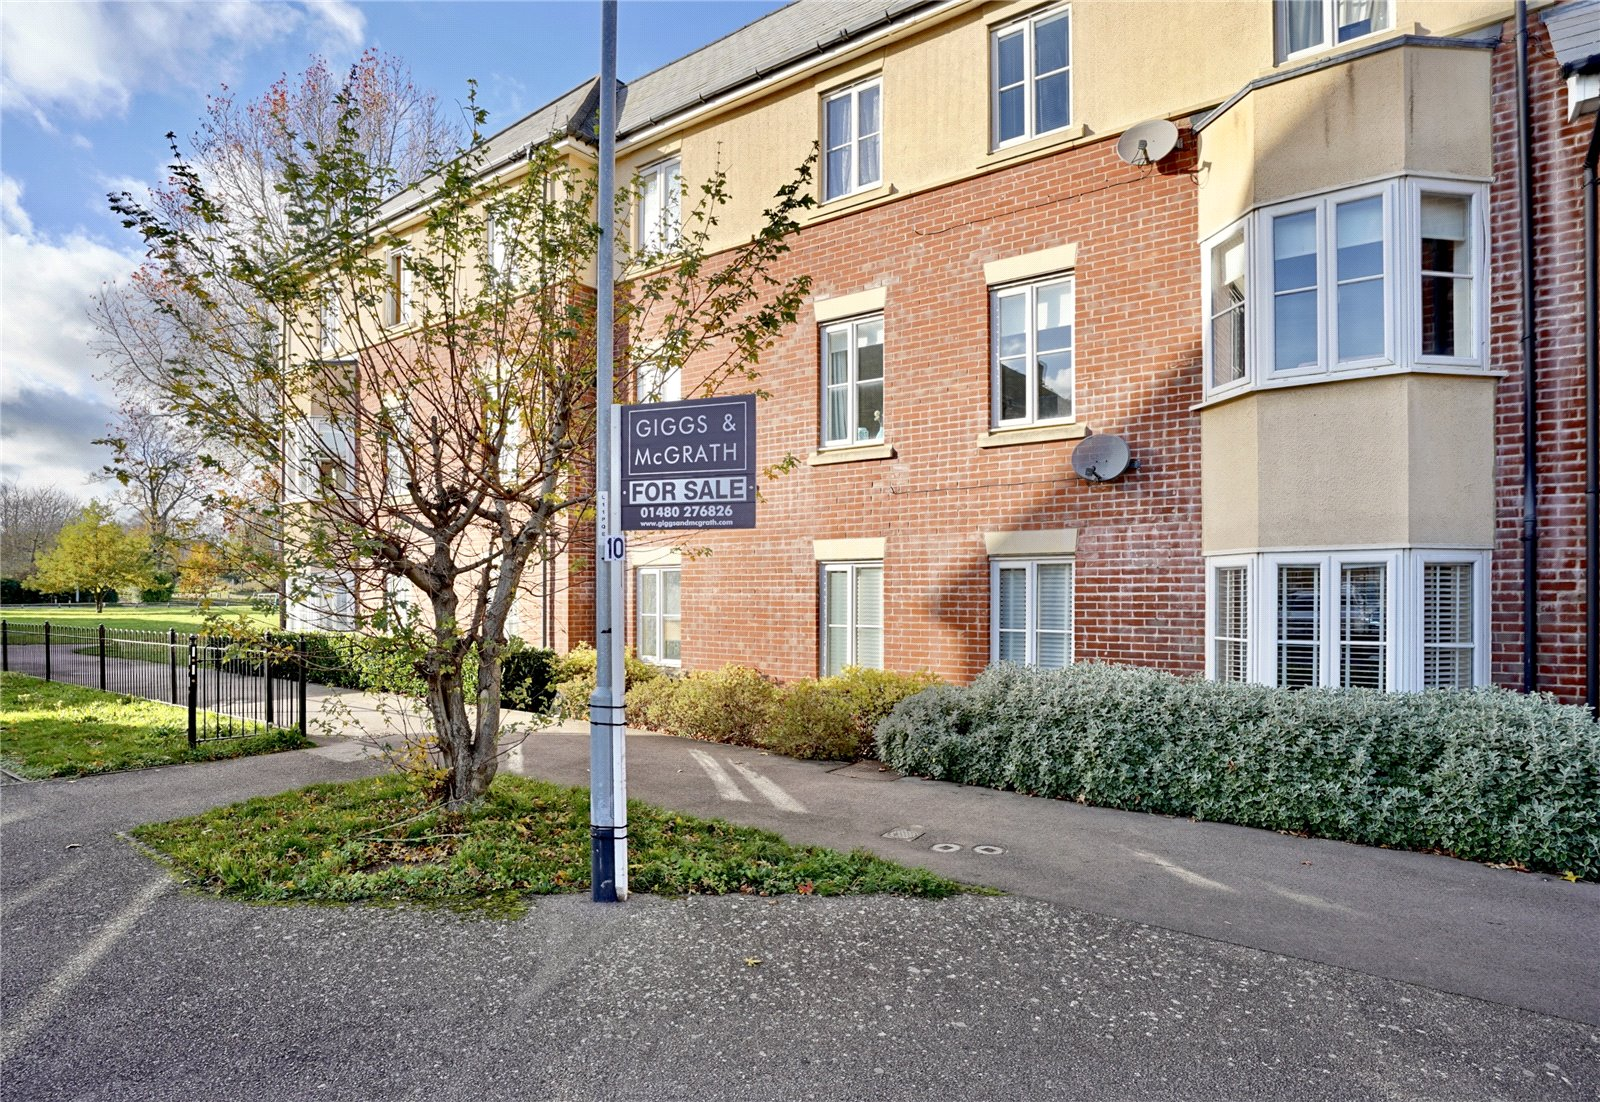 2 bed apartment for sale in Papworth Everard, CB23 3RZ 0